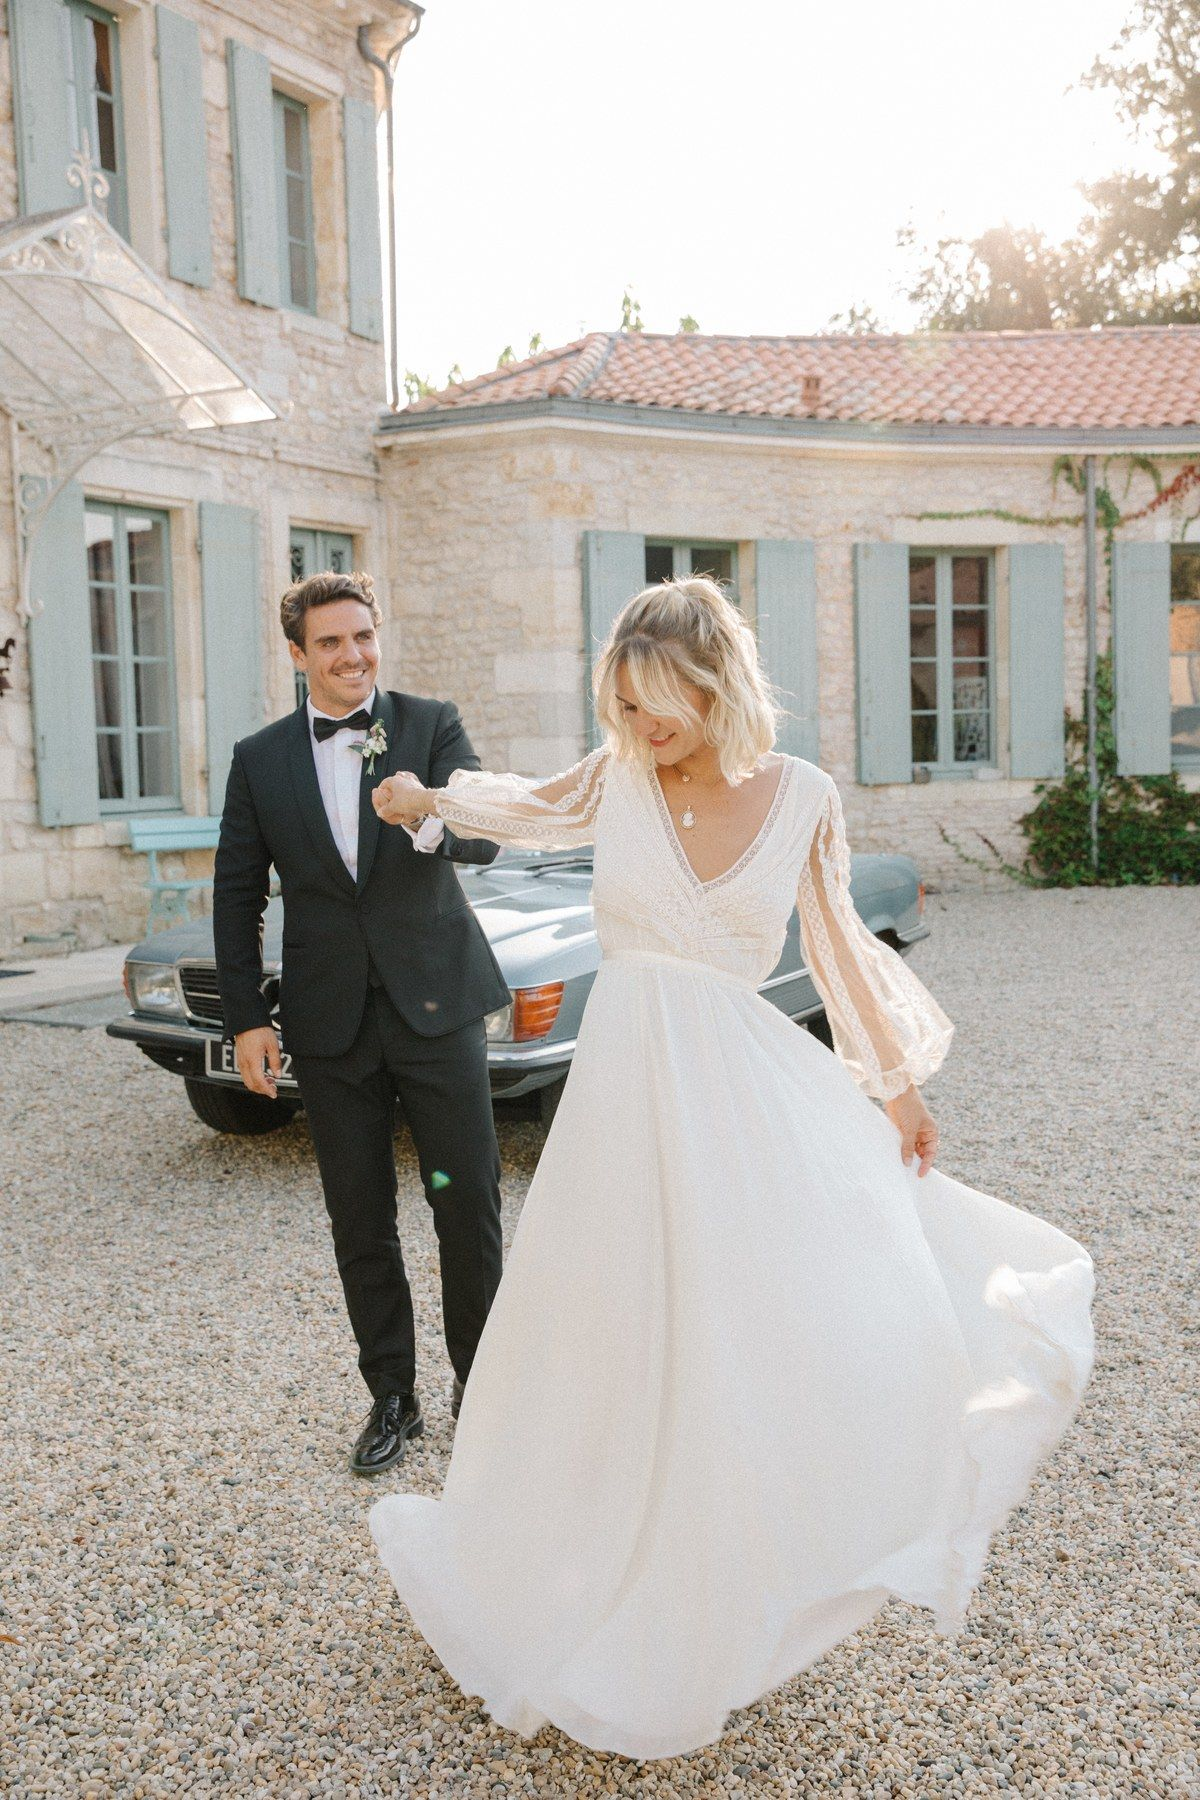 An Influencer's Relaxed French Wedding Near Bordeaux